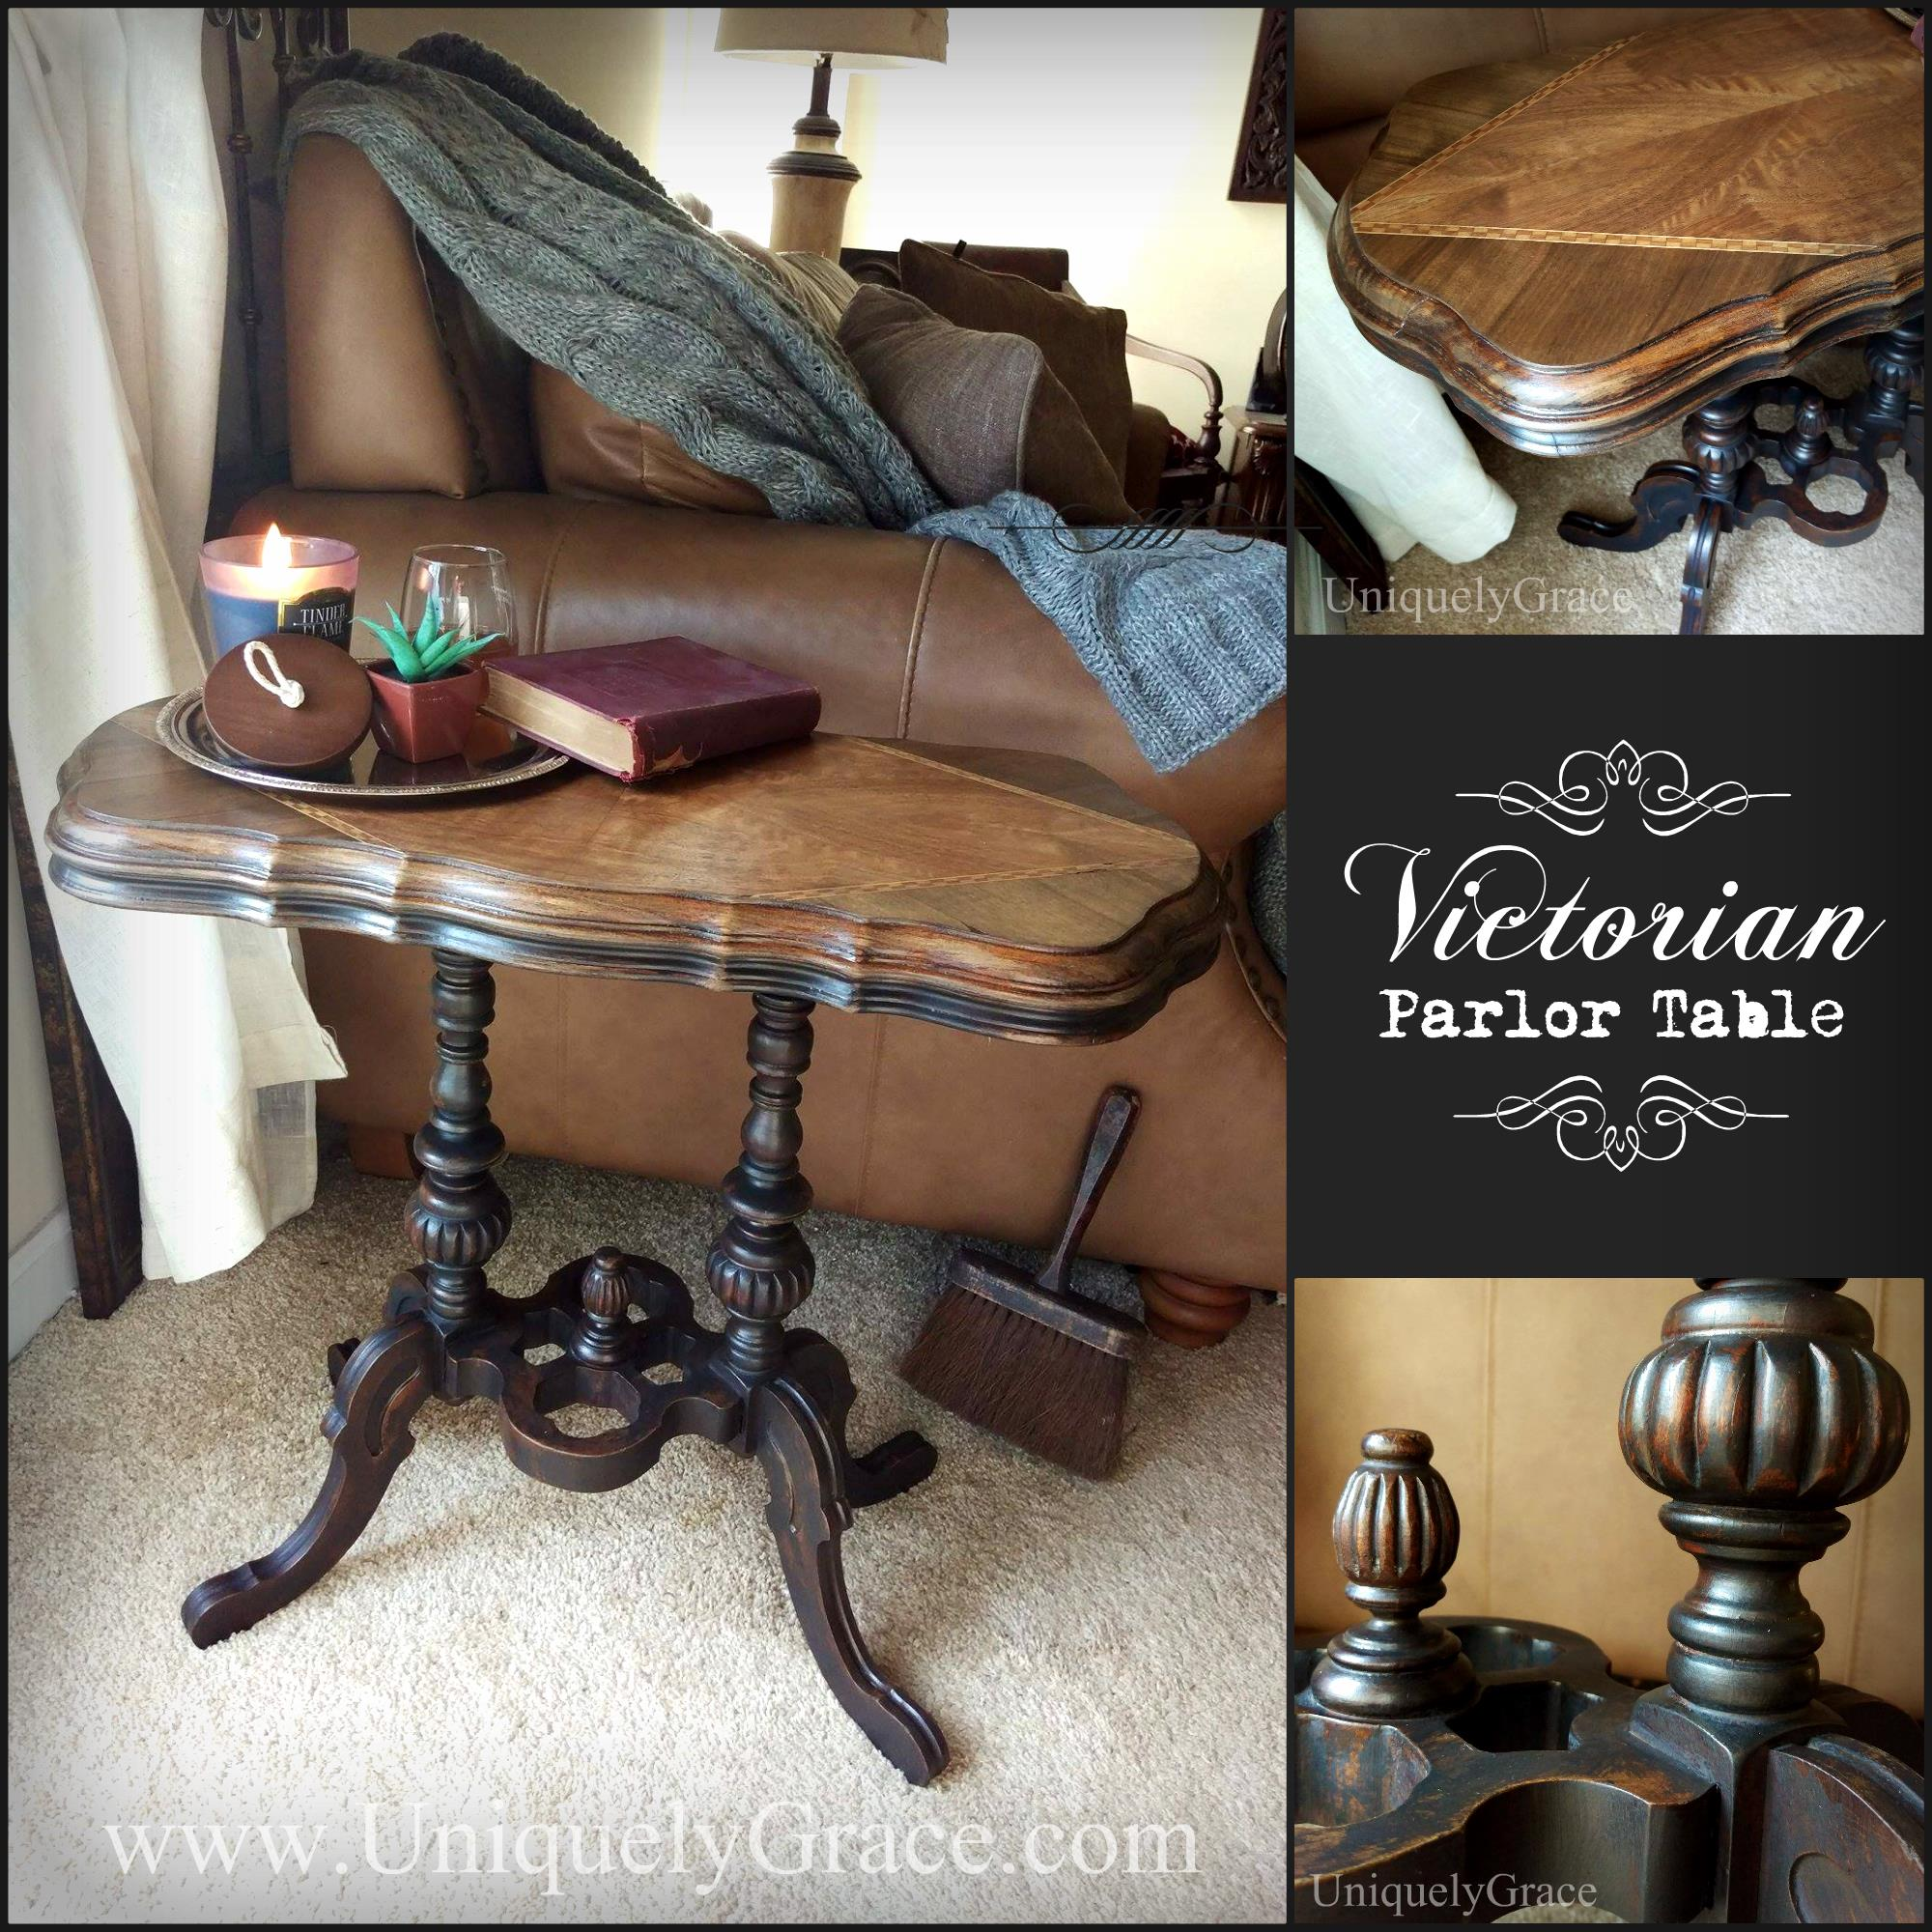 Victorian Parlor Table Circa 1870s Uniquely Grace Designs